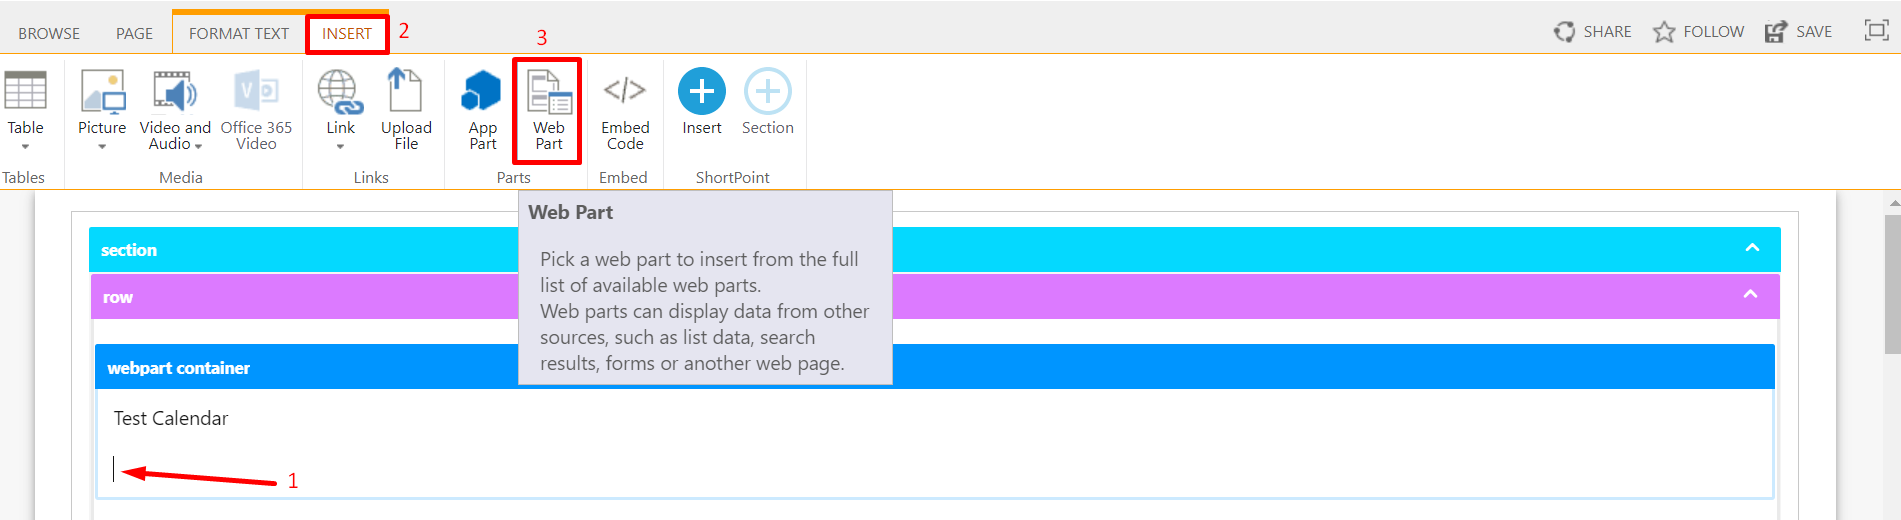 Adding SharePoint Web Part inside the Webpart Container